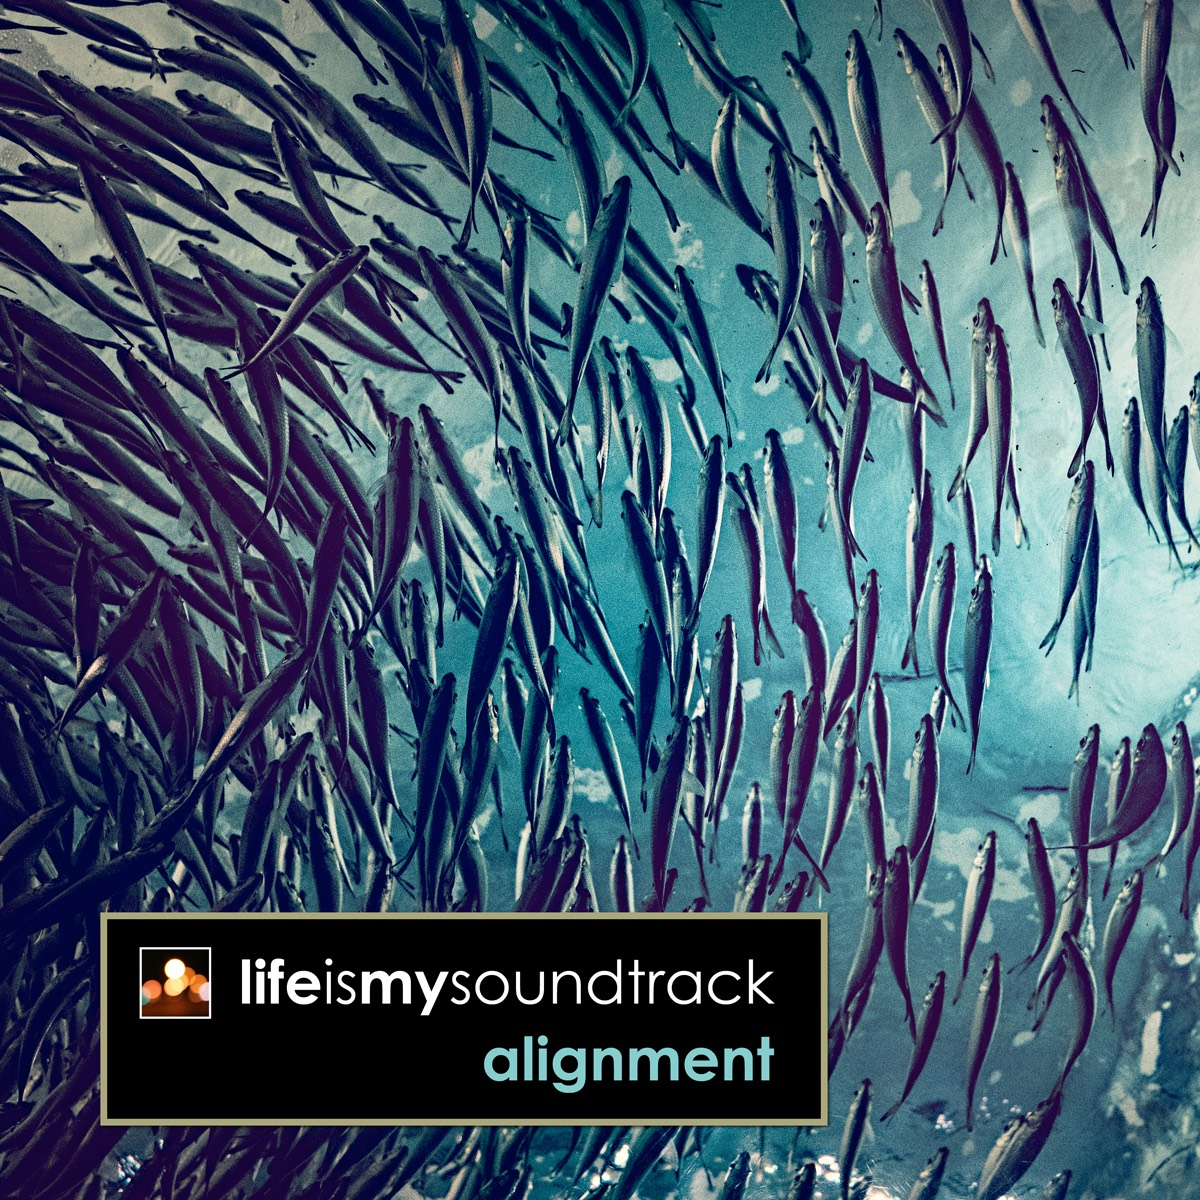 The album Alignment by Life Is My Soundtrack - Music inspired by the ocean tides